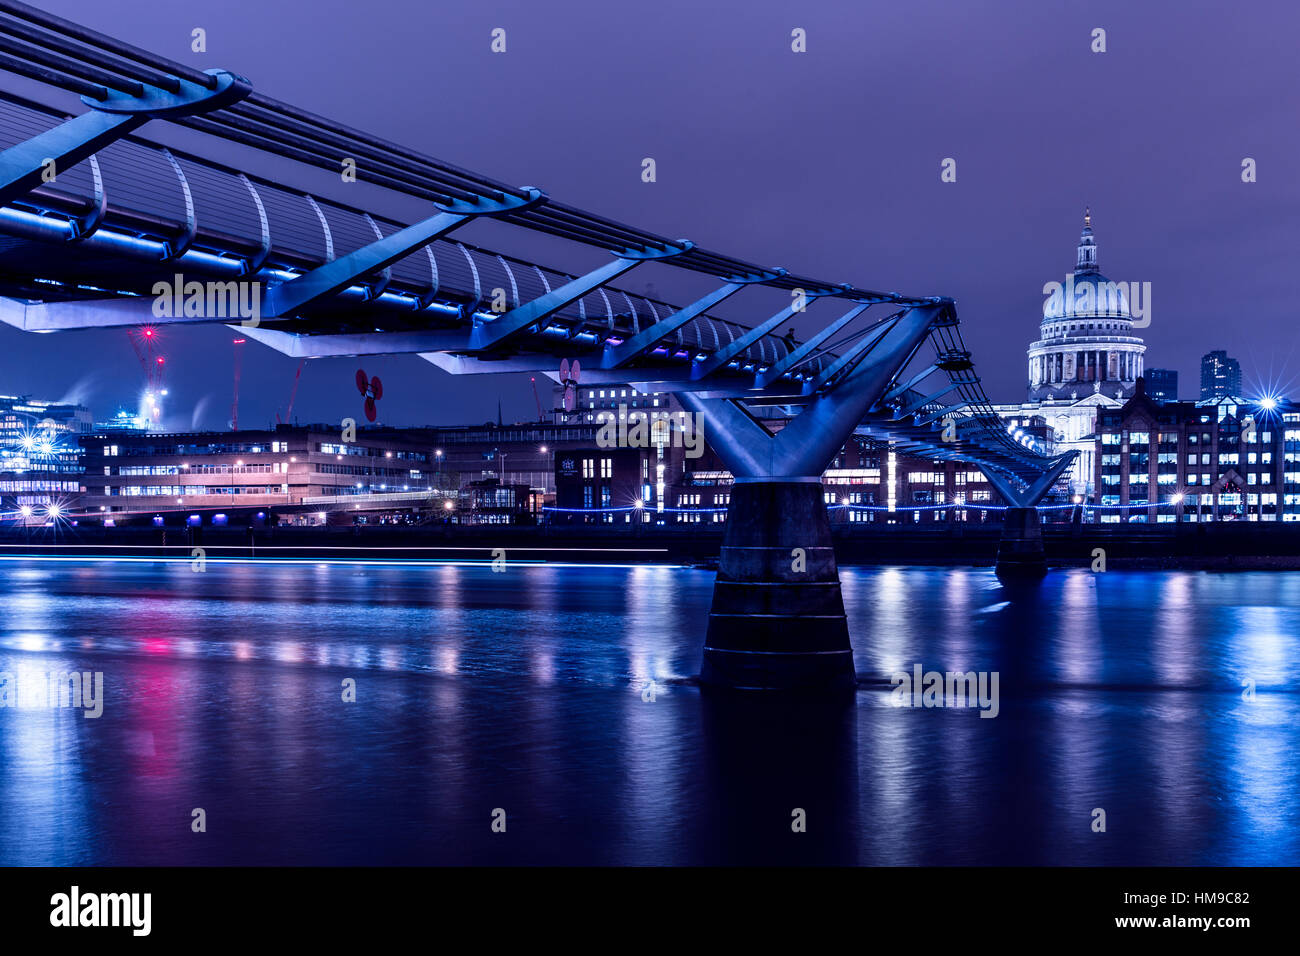 London skyline at night on River Thames with Millennium Bridge and St Paul's Cathedral - Stock Image